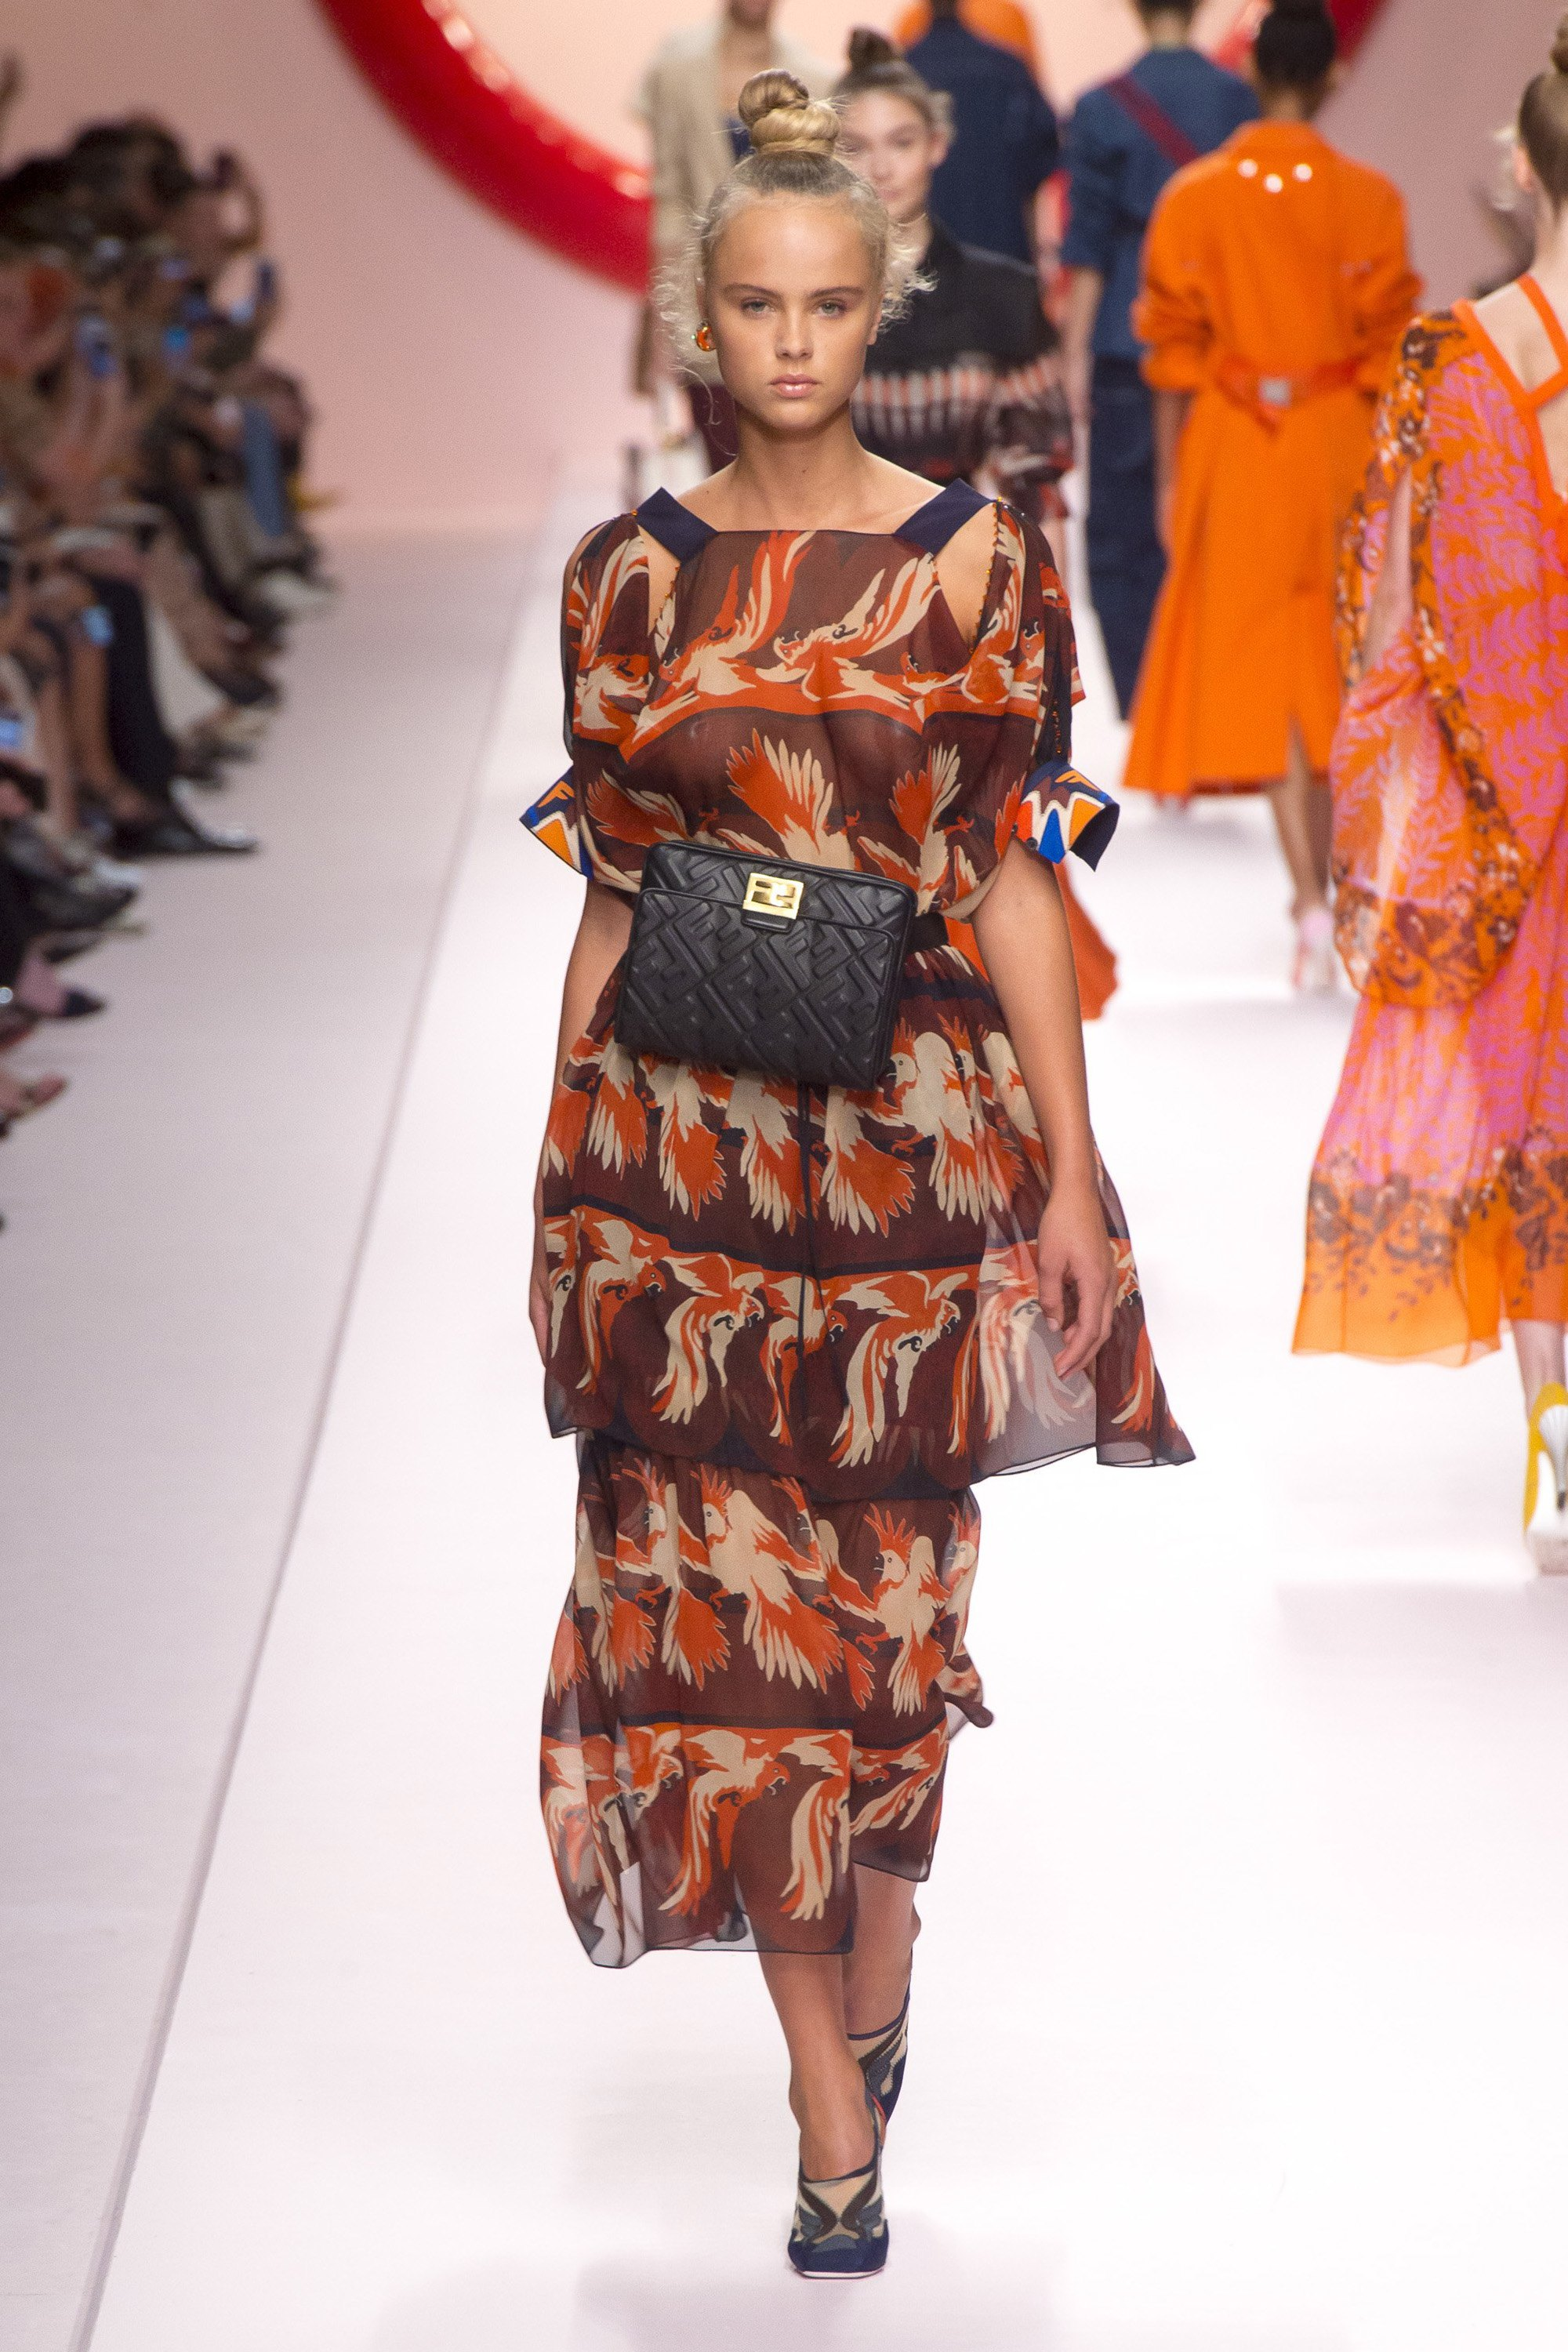 Fendi Spring 2019 runway look, gown with bird print in burnt orange and brown and black belt bag